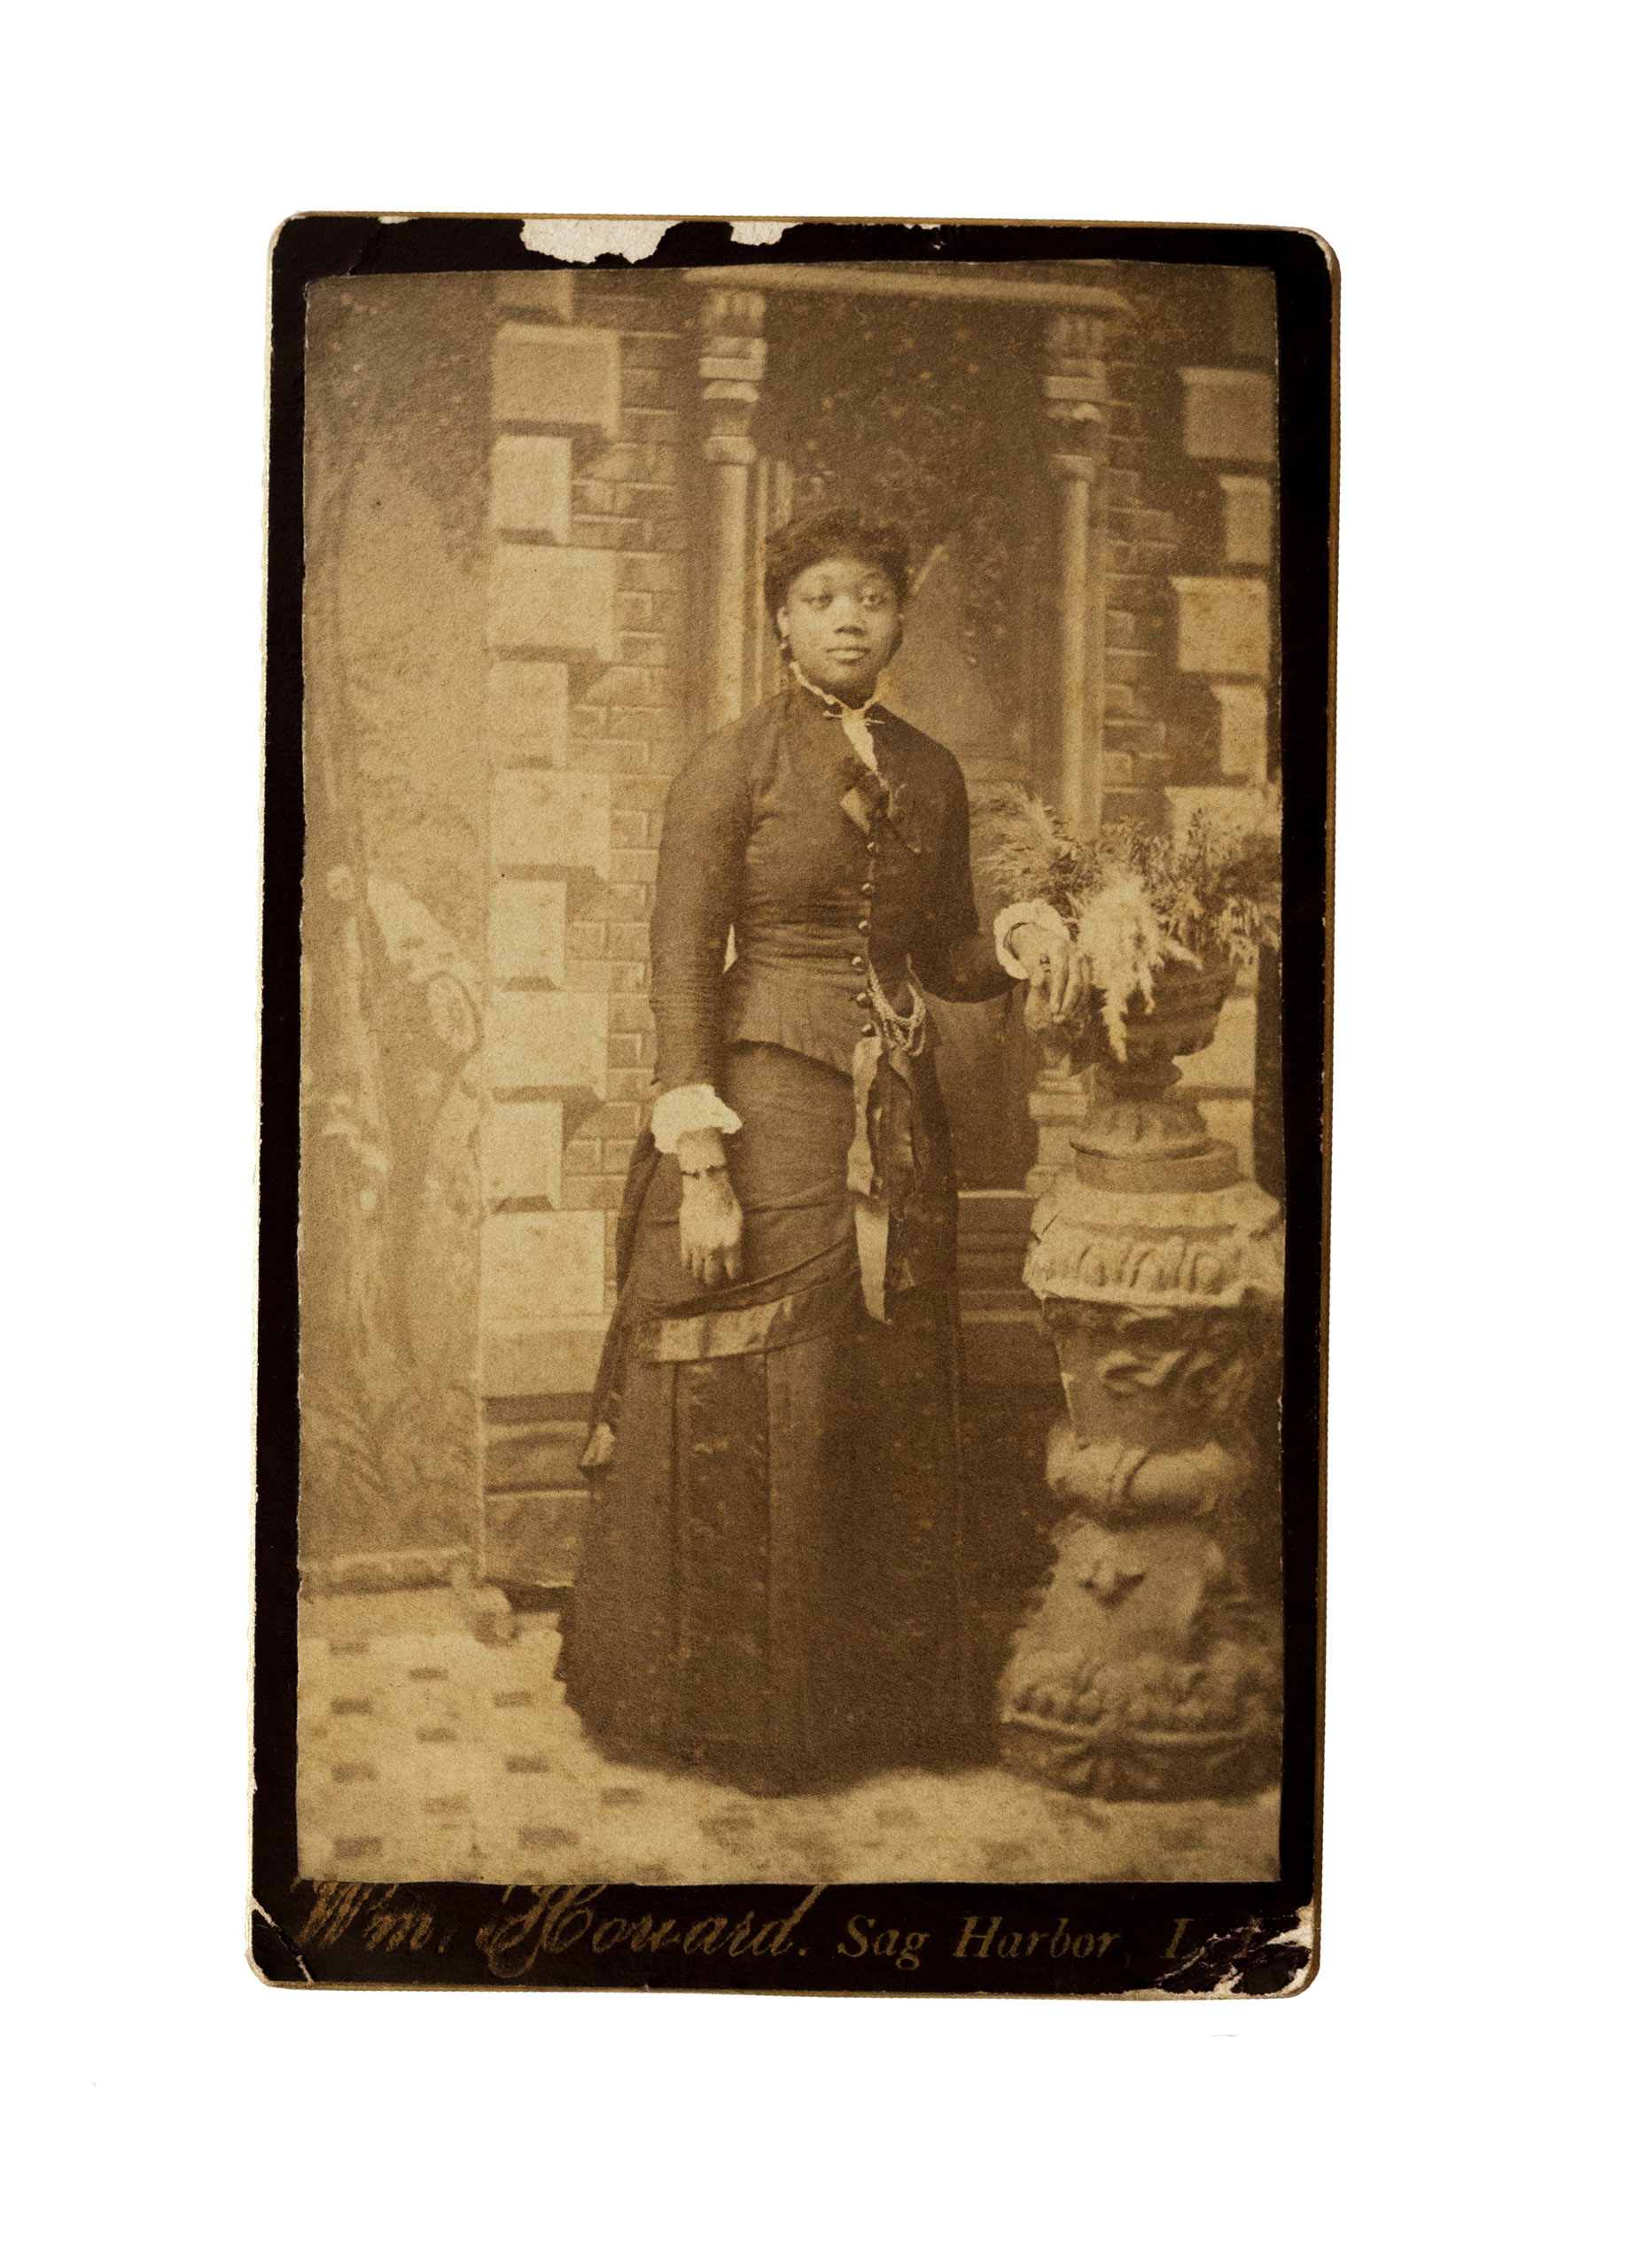 Daughter of Esther Green, born between 1850 and 1860 in Eastville, N.Y.